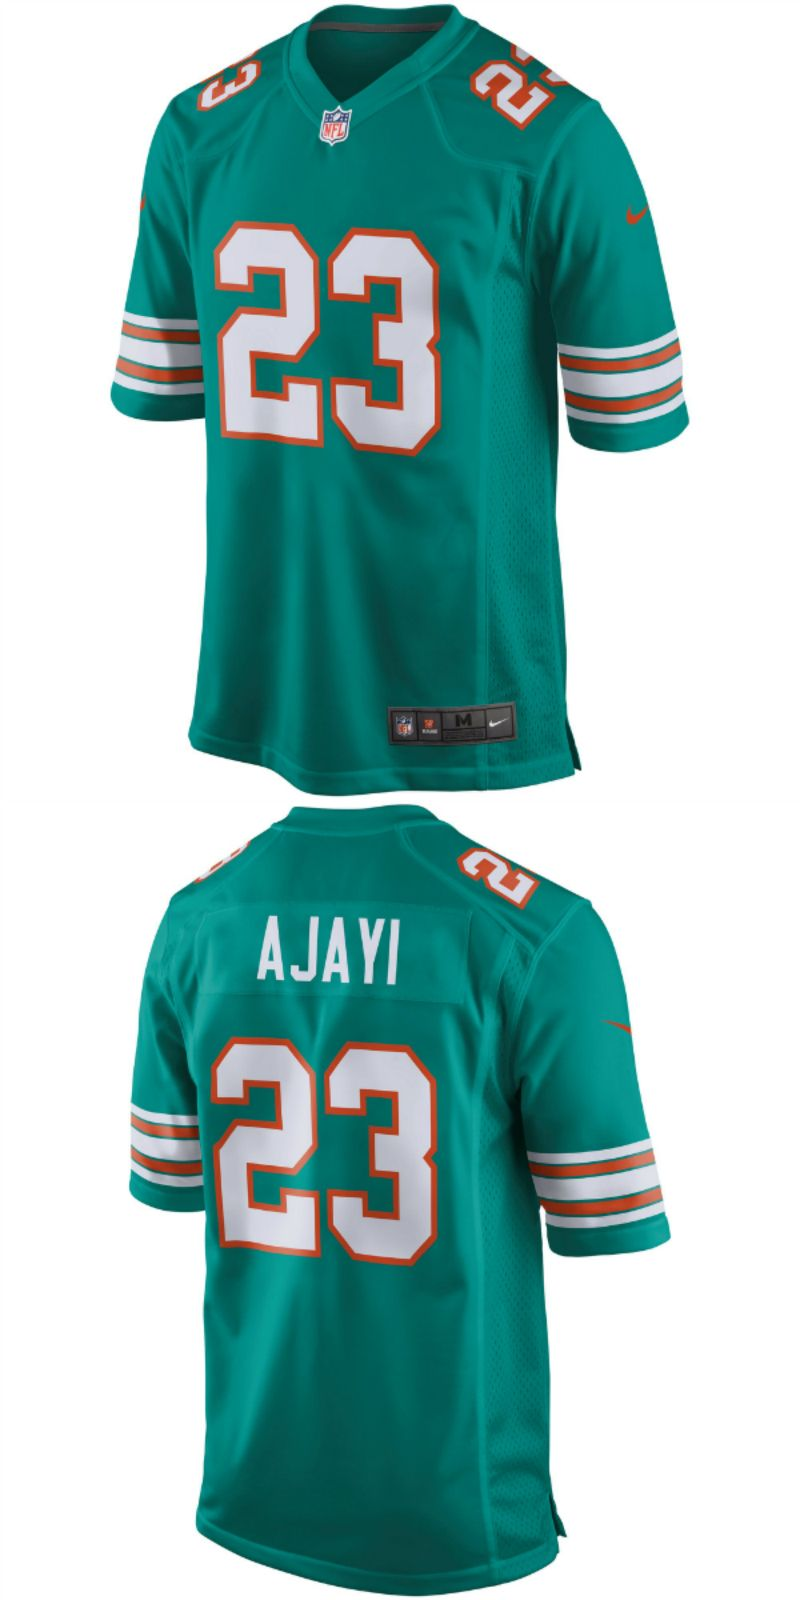 486fccaa UP TO 70% OFF. Jay Ajayi Miami Dolphins Nike Throwback Game Jersey ...